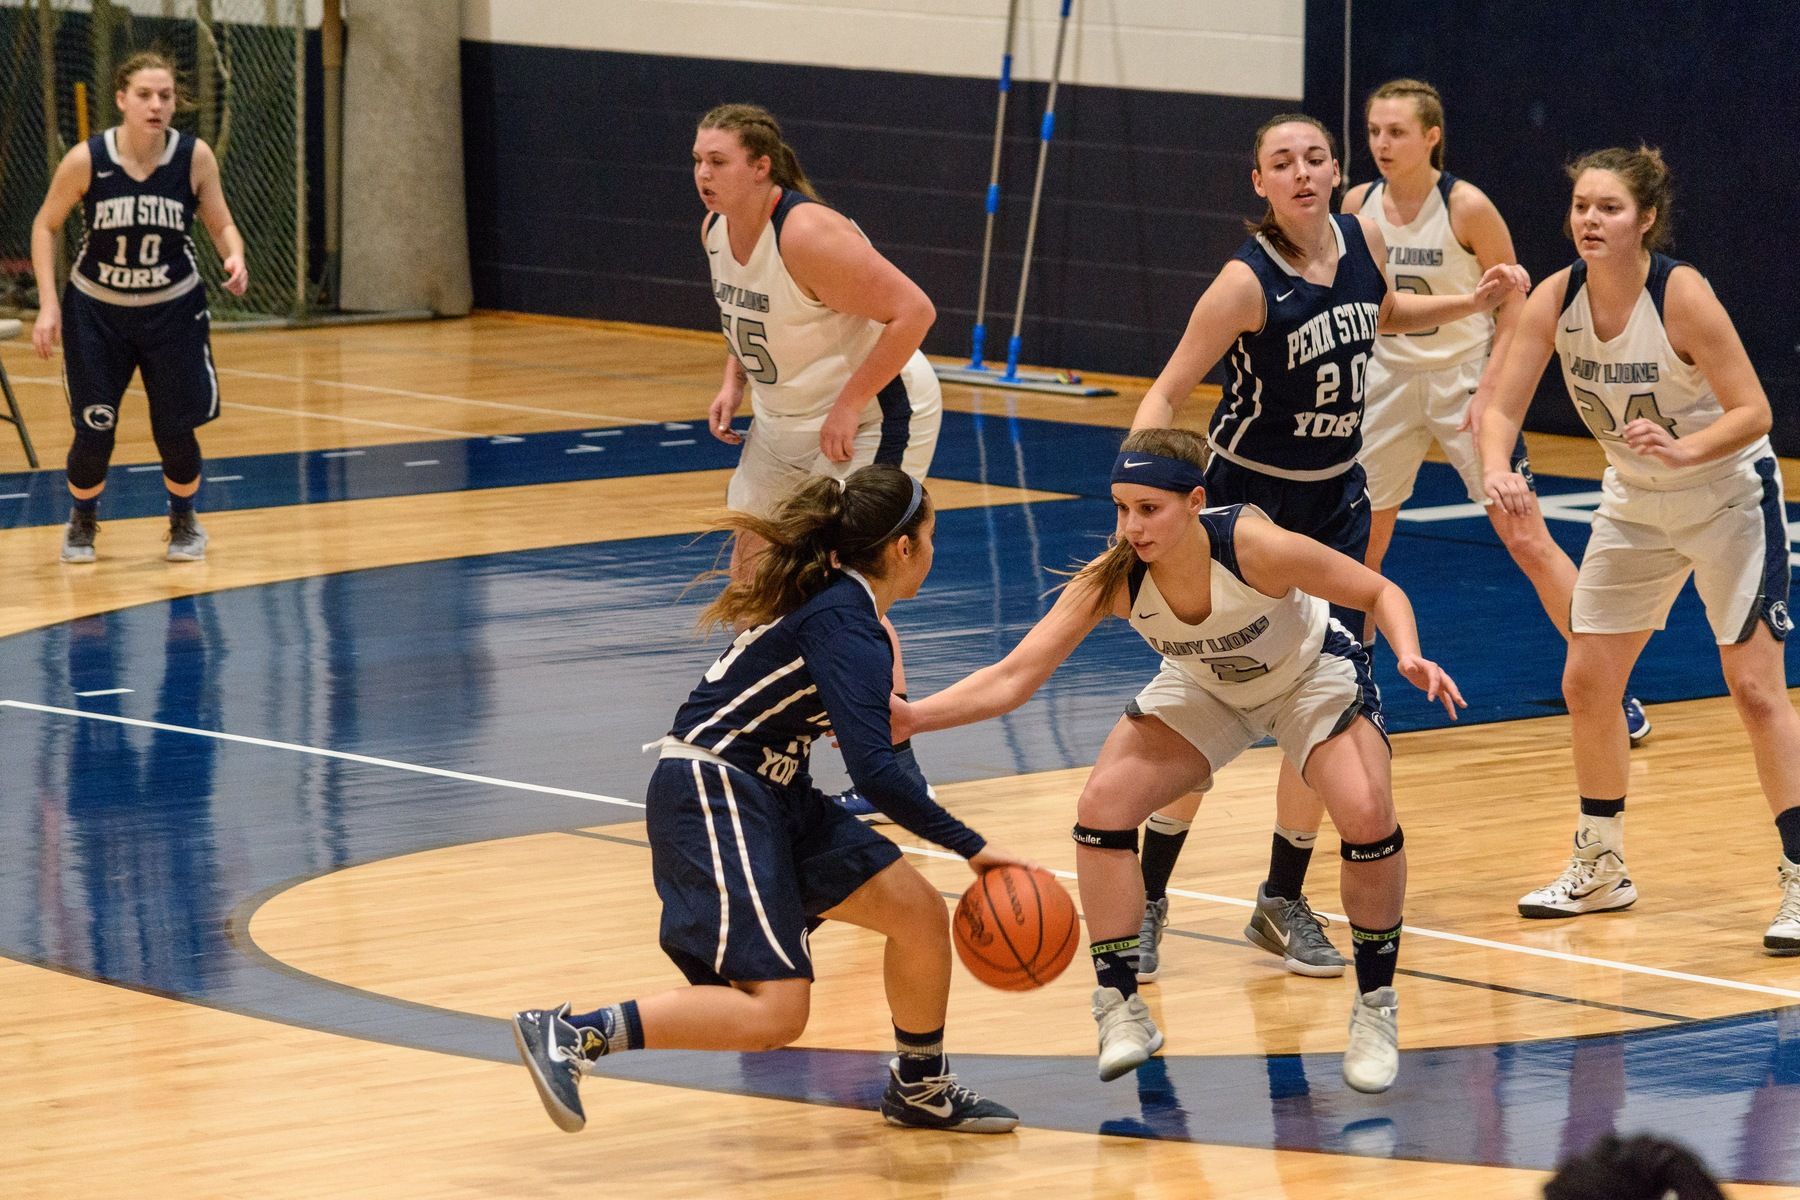 Corina Rivera (with ball) tries to find an opening in the Penn State Schuylkill defense as Karra Thomason (#20) looks on.